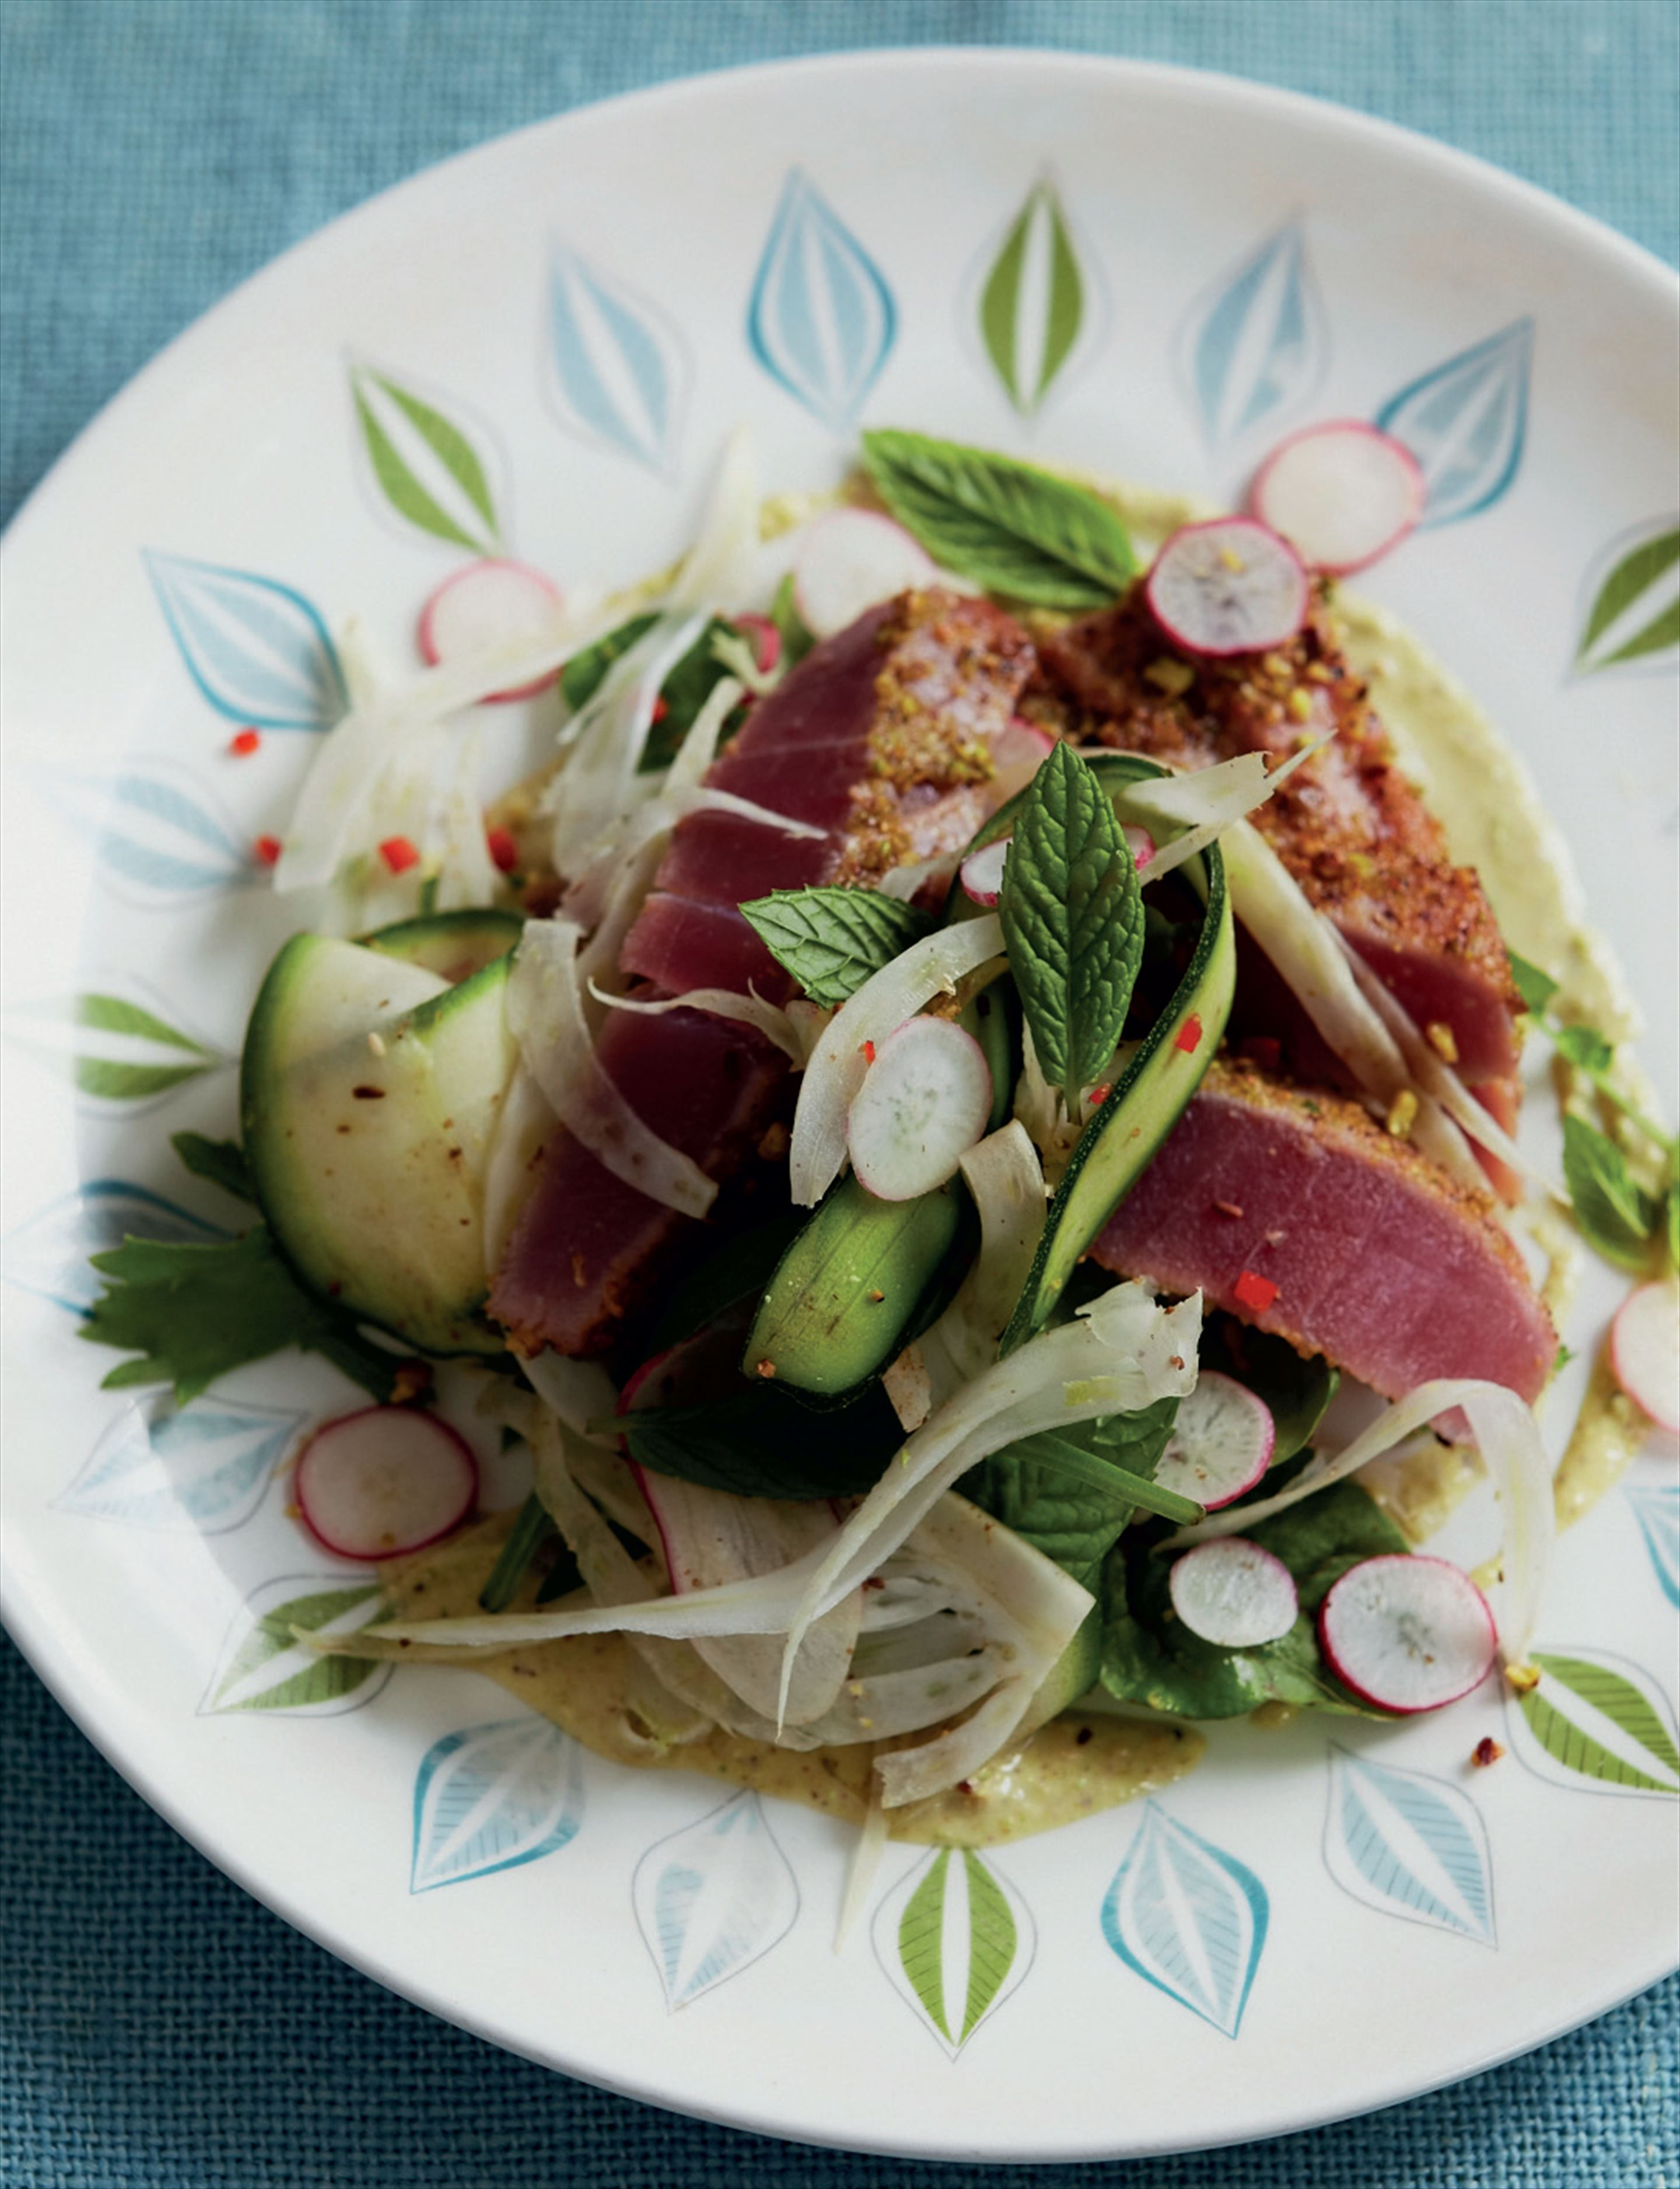 Pistachio-crusted seared tuna salad